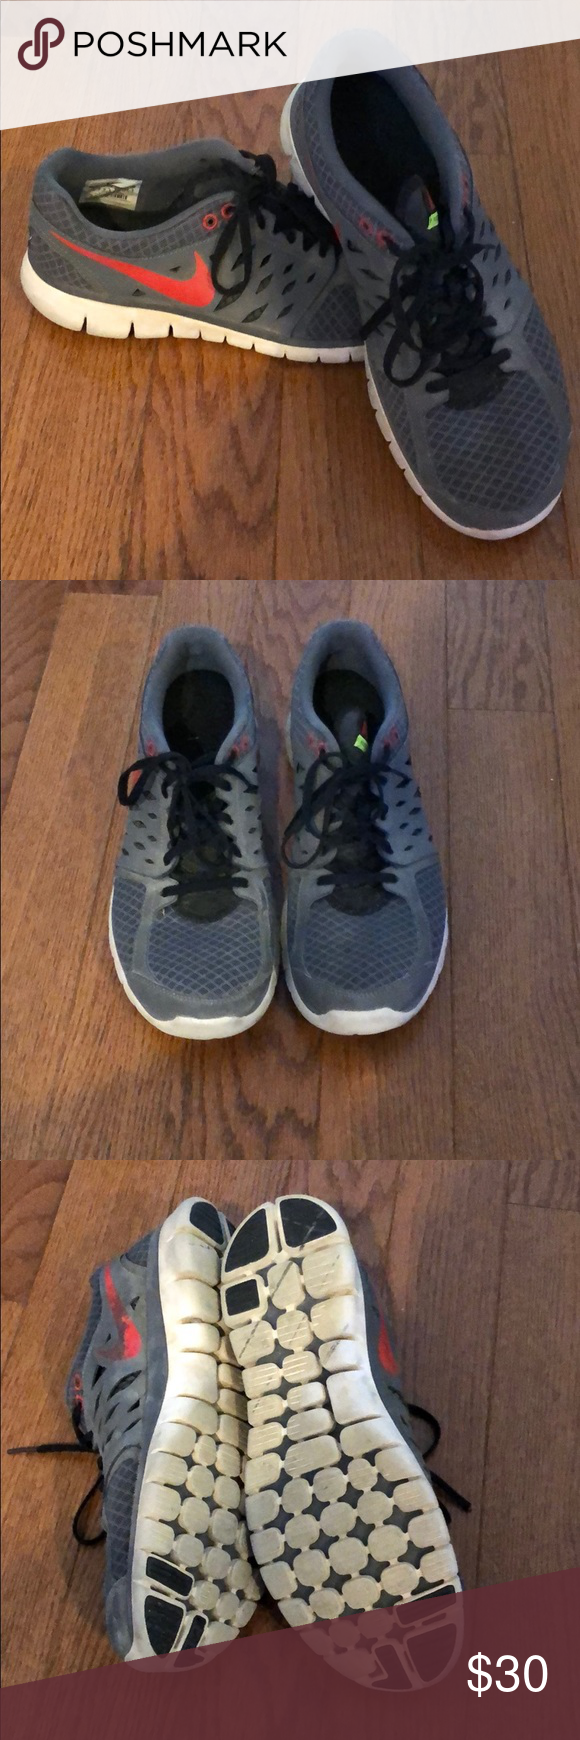 Nike men's running shoes size 10.5 in